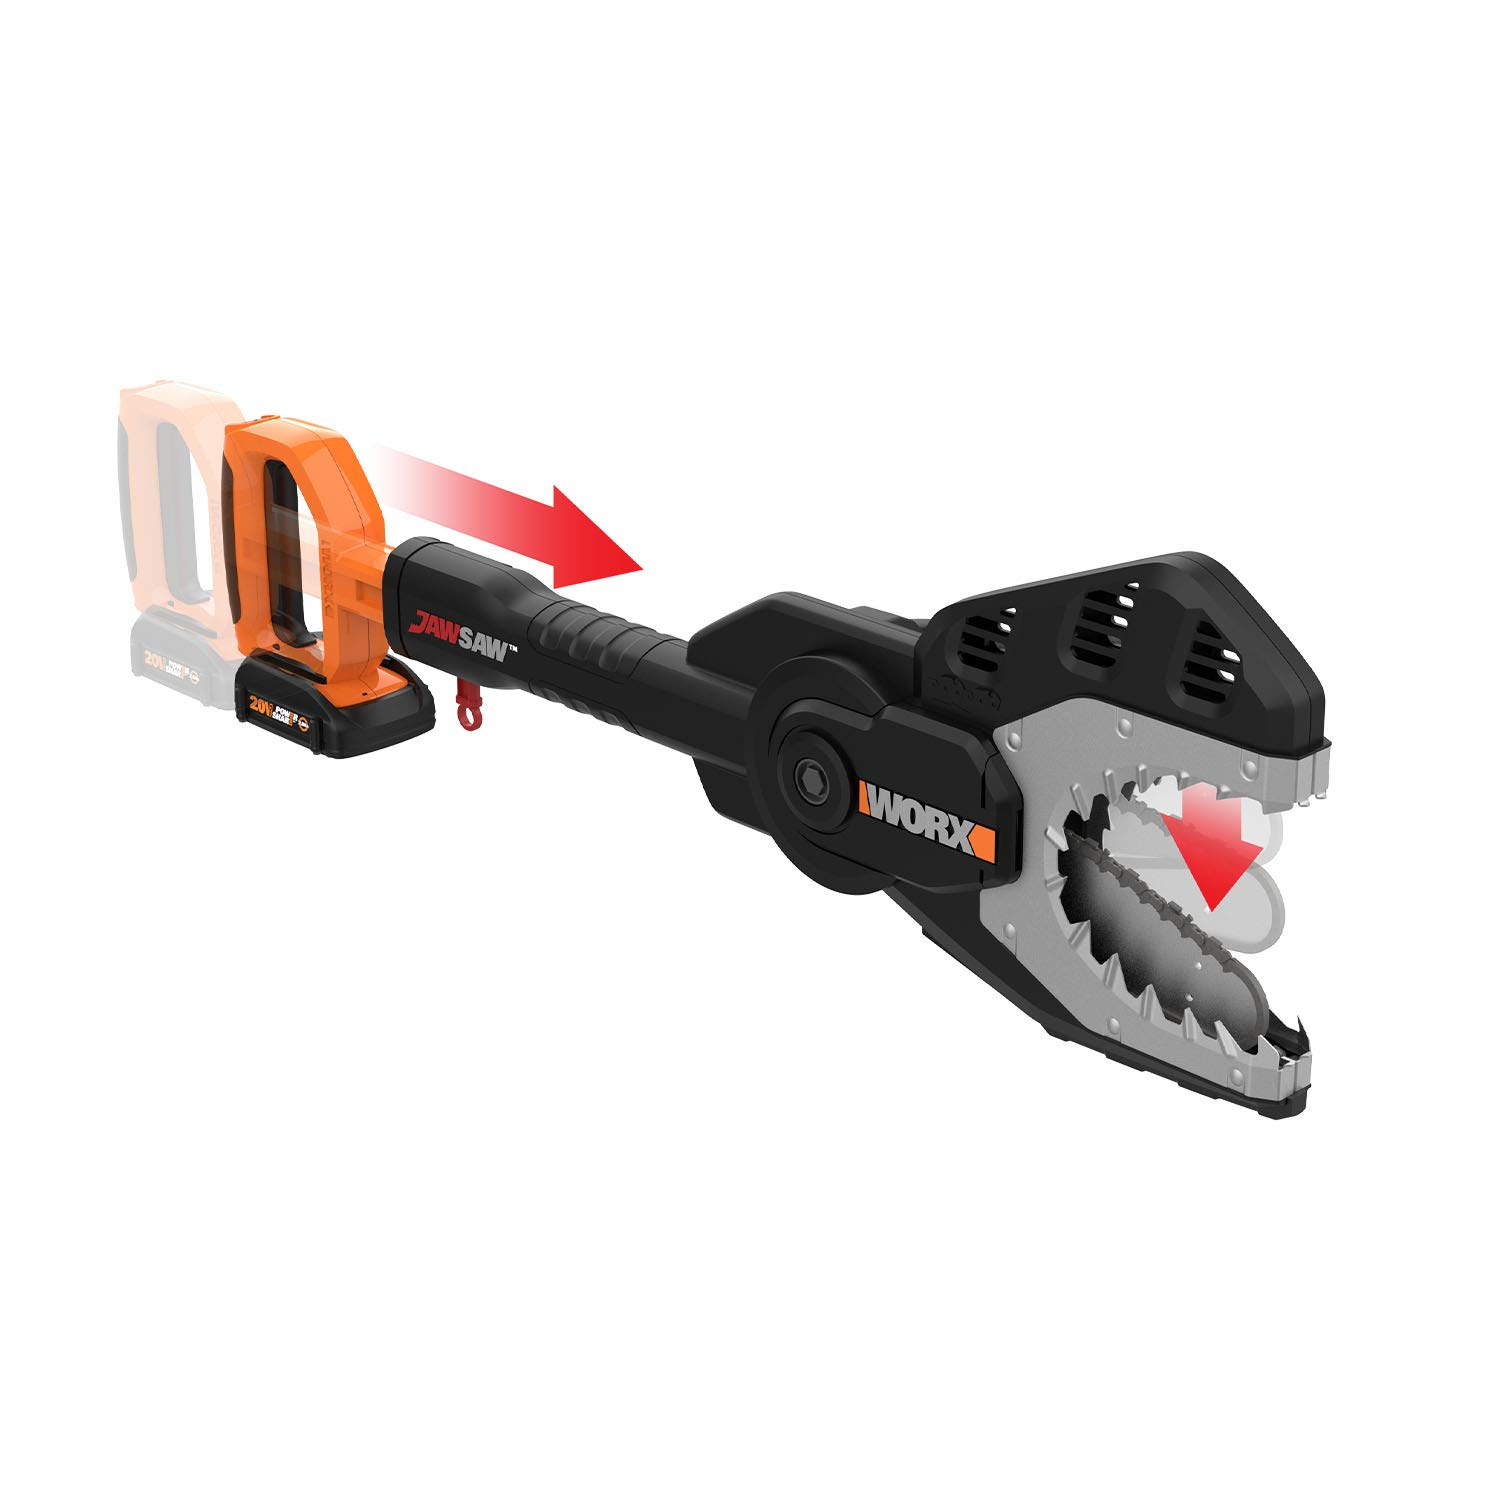 WORX WG320 JawSaw 20V PowerShare Cordless Electric Chainsaw with Auto-Tension by WORX